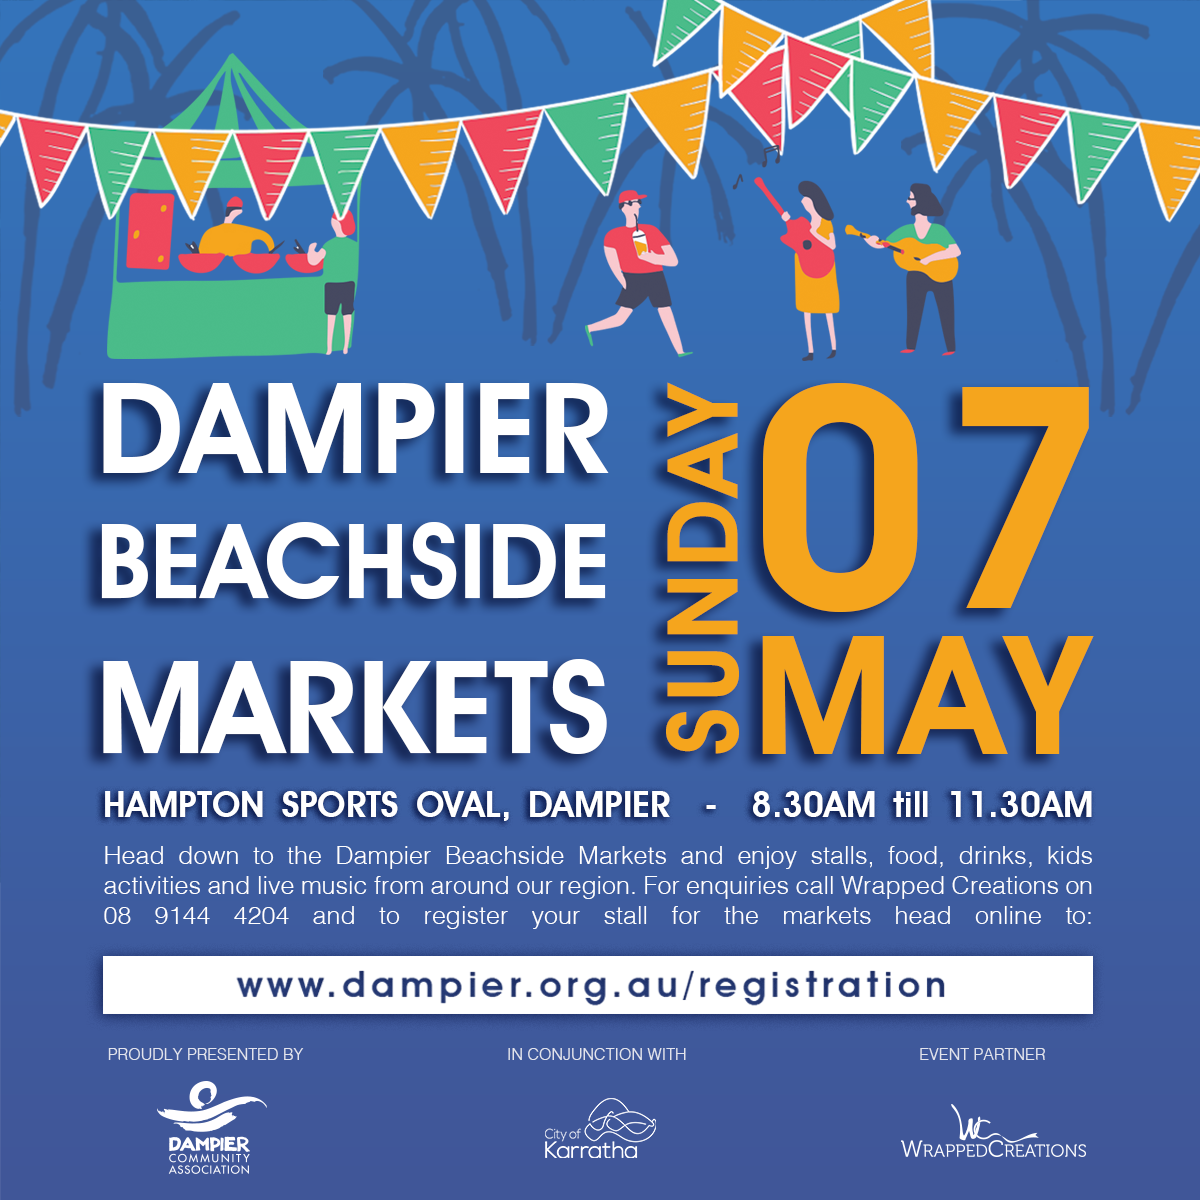 http://karratha.wa.gov.au/sites/default/files/events/facebook_dcamarkets_timeline_2017.05.07_RGB.png#overlay-context=events/dampier-beachside-markets-may